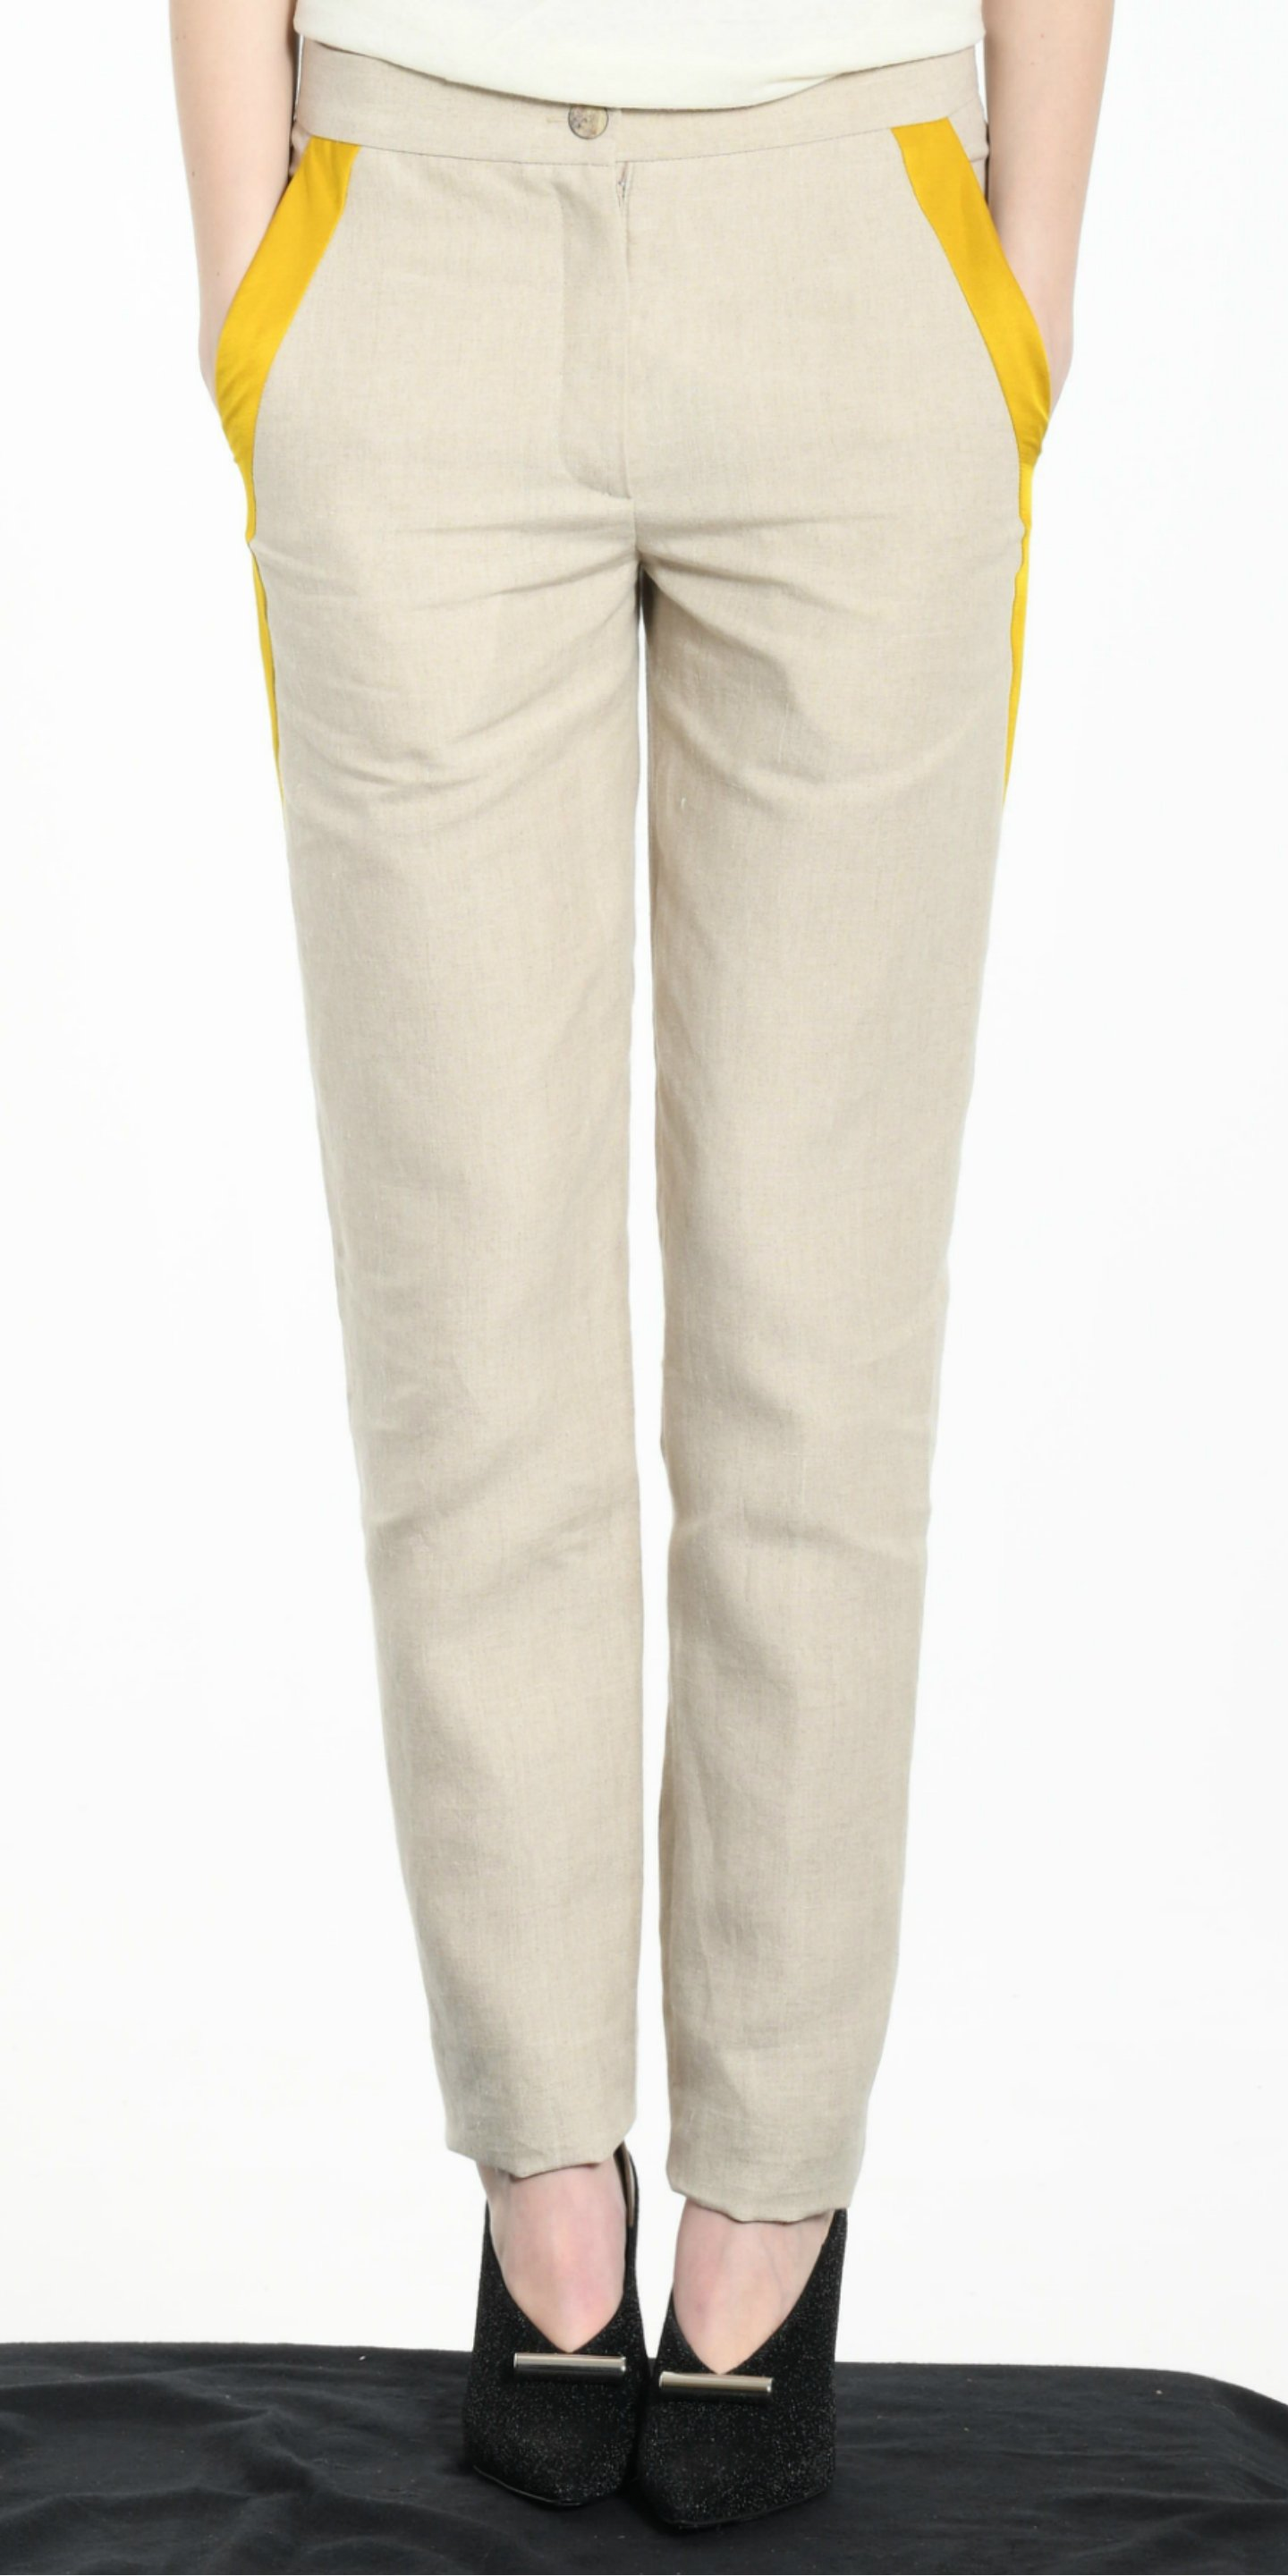 TROUSERS BEIGE WITH YELLOW STRIP from BEARD & FRINGE